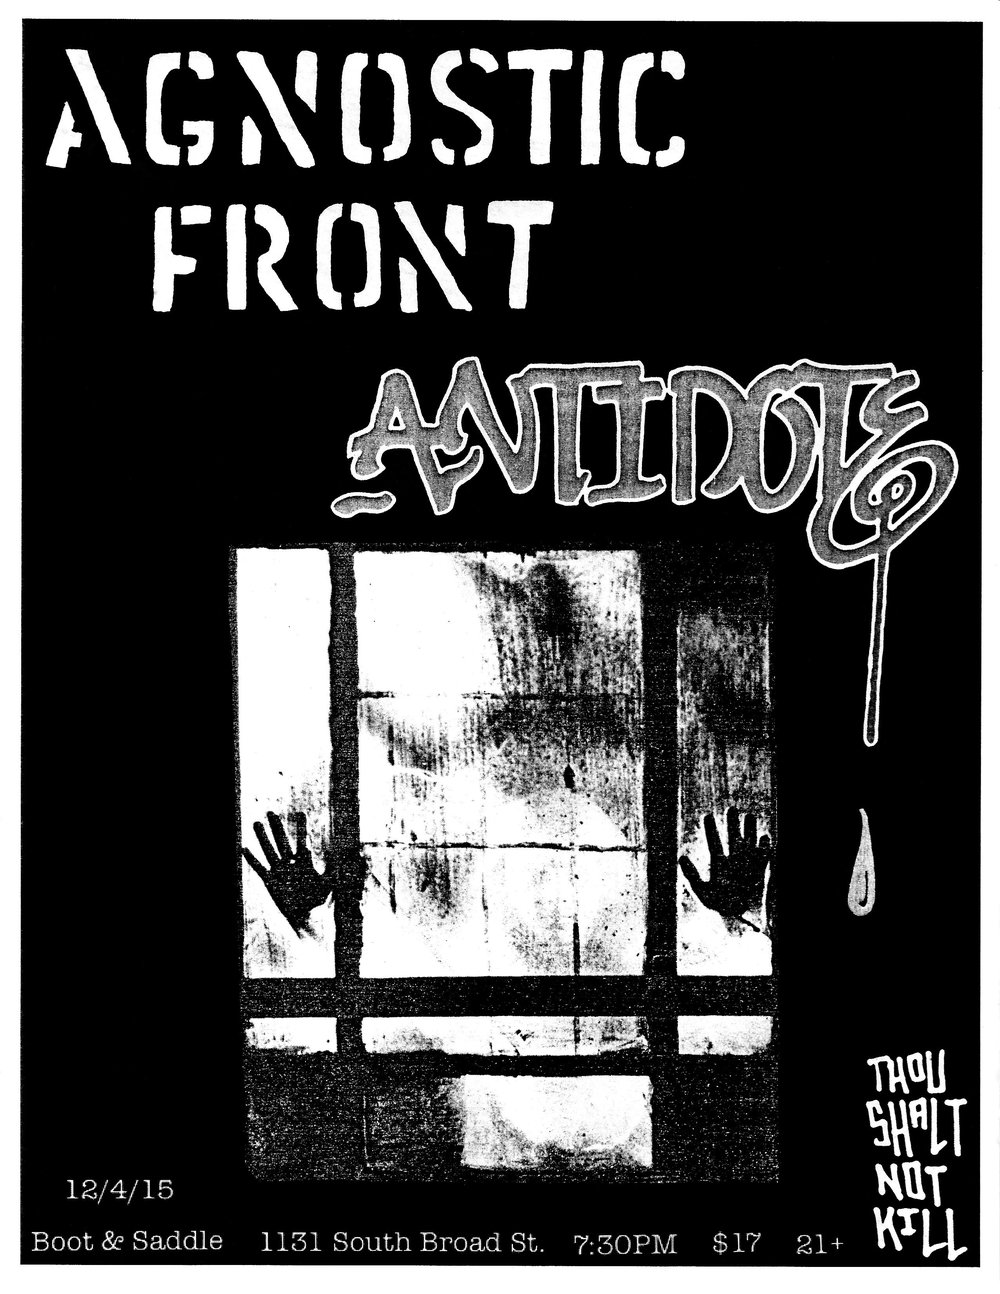 2) AF - I had one goal with this one, and that was to make a flyer that gave off an A7 '83 vibe. The image came from the pages of a horror film book that I purchased at Book Trader in Olde City (and subsequently fell apart). This was assembled on the fly at the my most hated location, the Oregon Avenue Staples copy center. Truly a hell on earth.